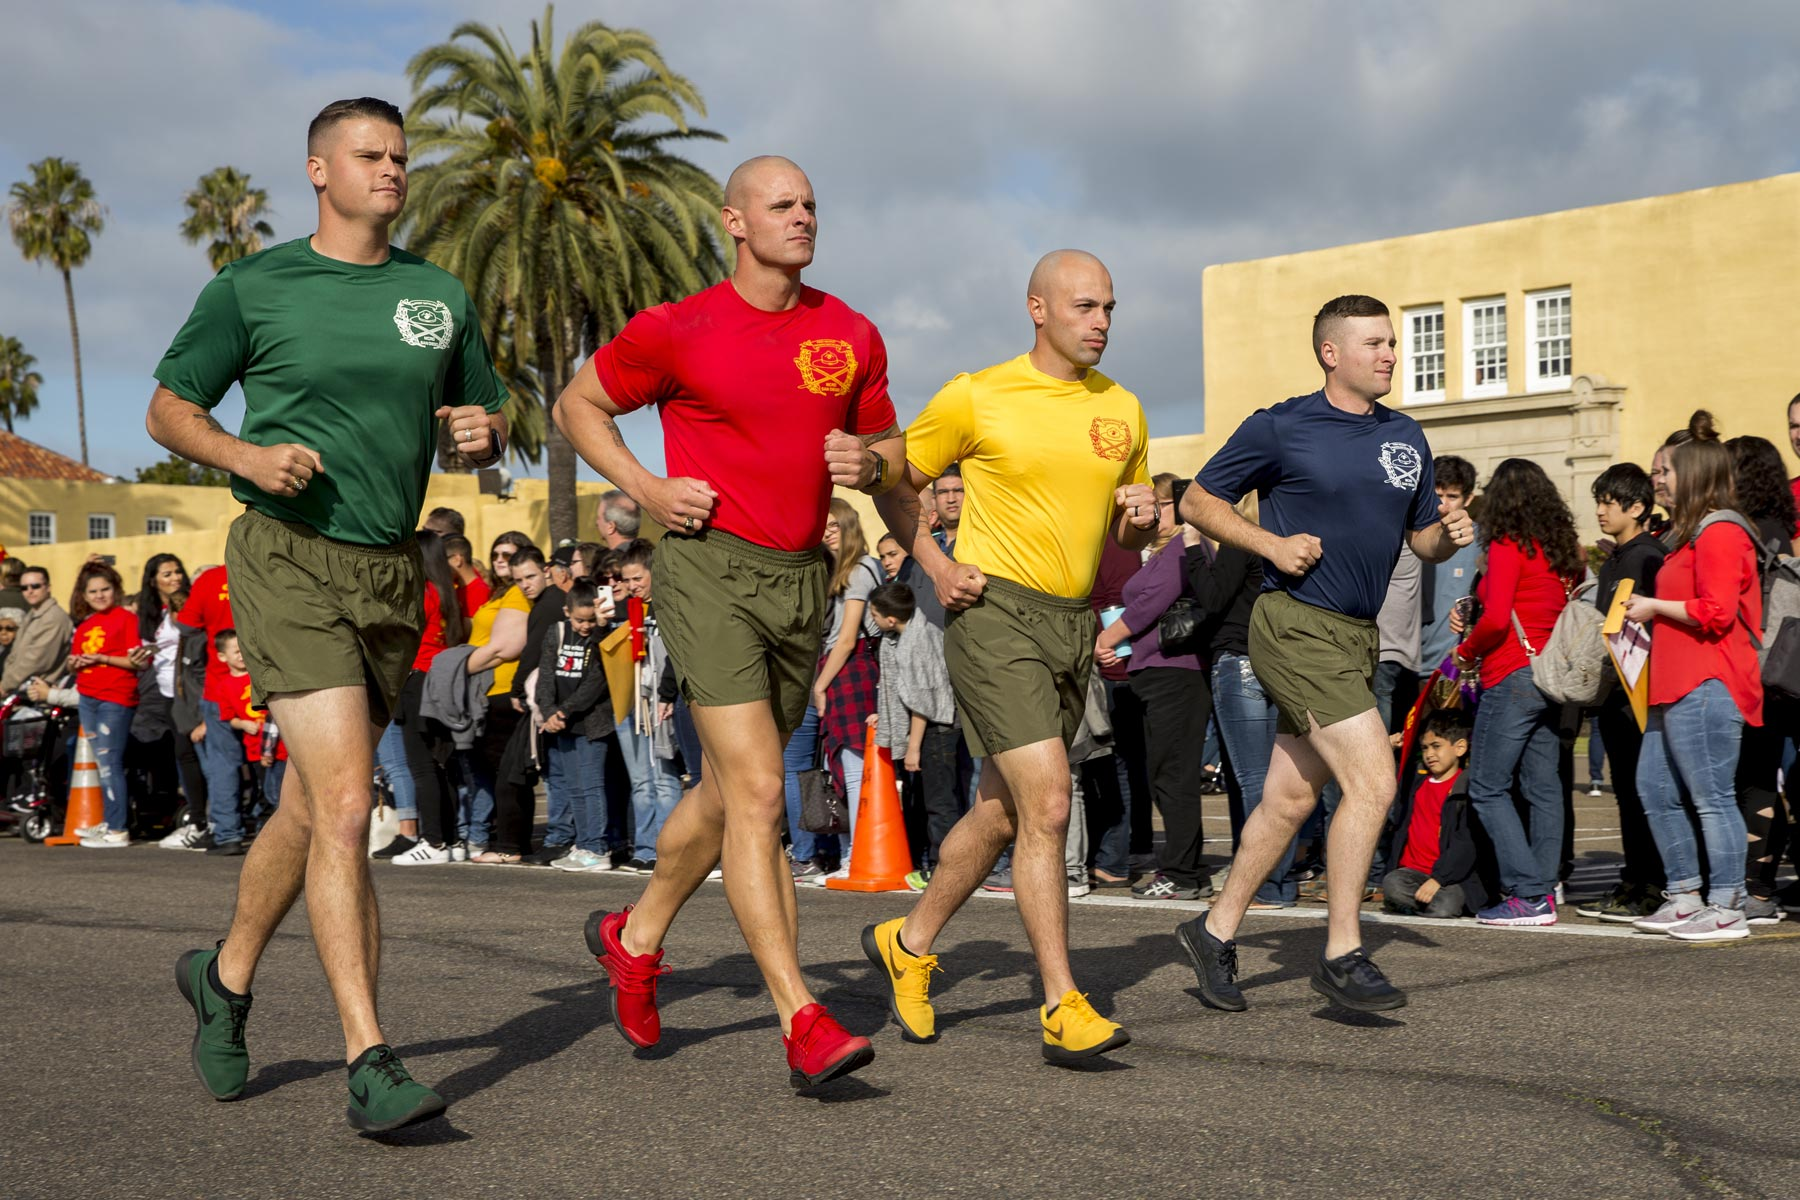 The Military Has Begun Issuing Sneakers to Recruits at Boot Camp